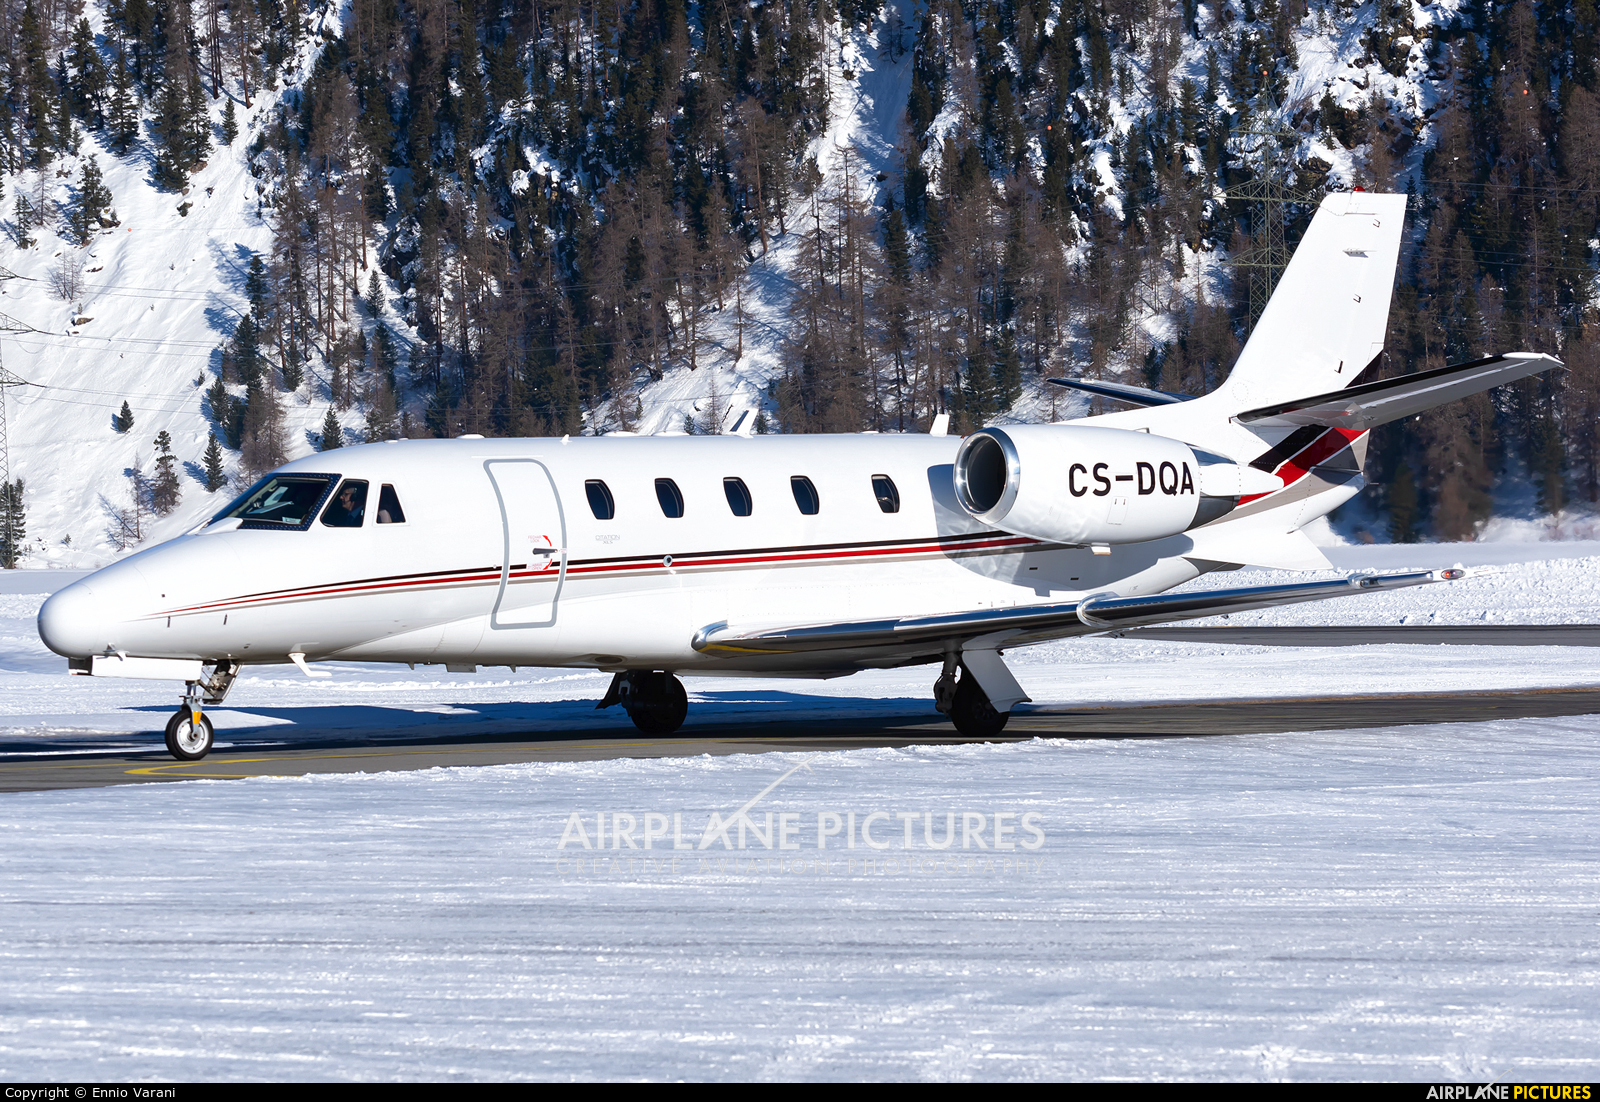 NetJets Europe (Portugal) CS-DQA aircraft at Samedan - Engadin